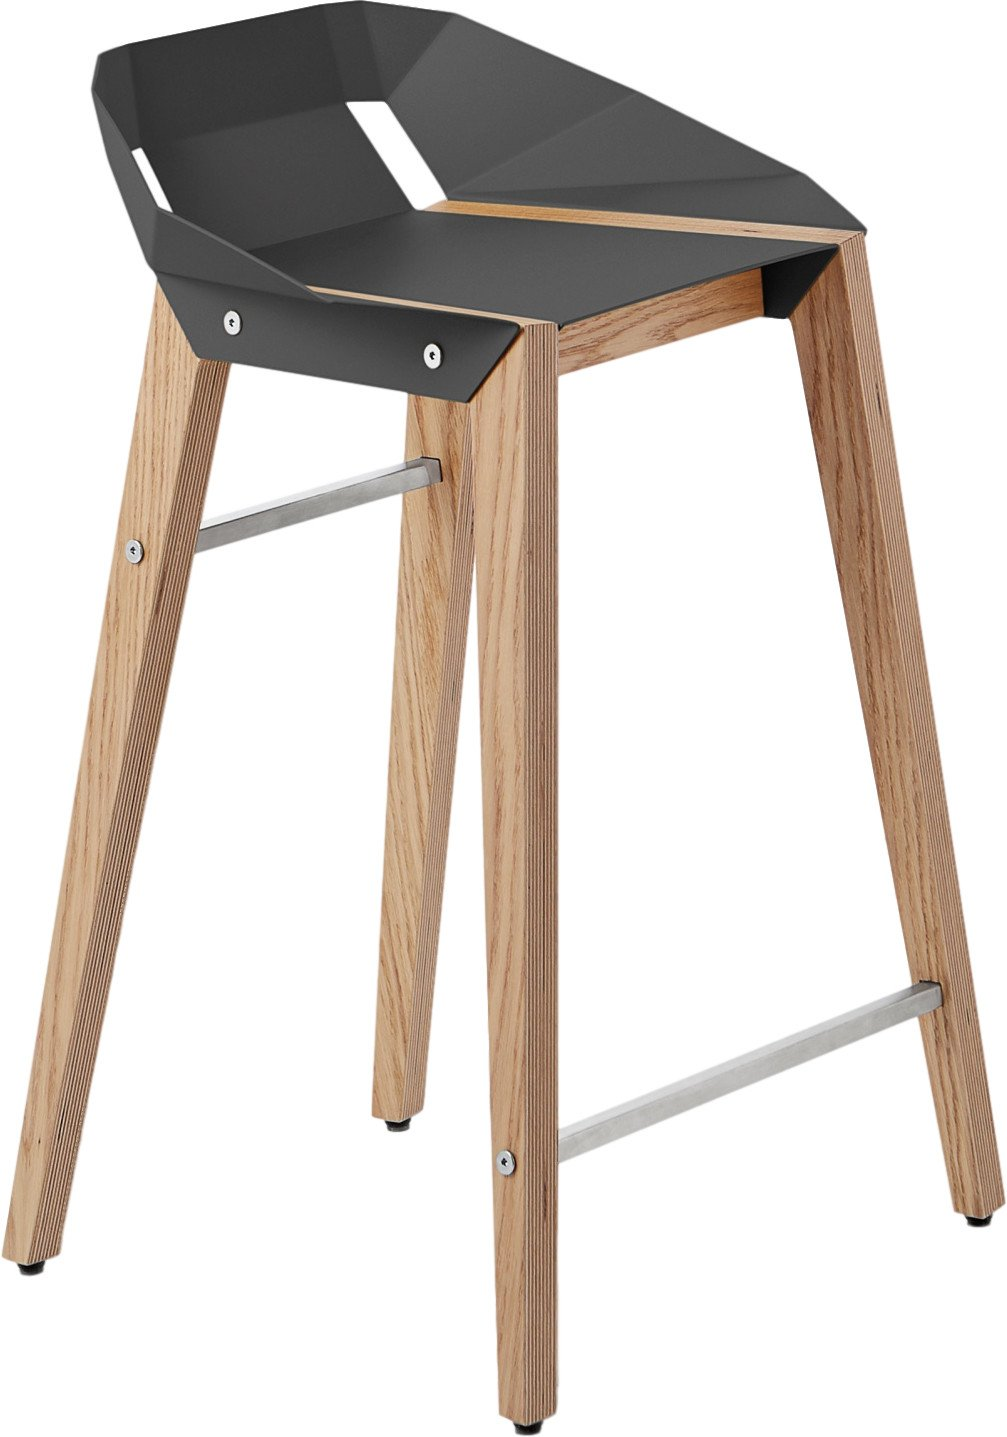 Diago Stool Low Dark Grey, Tabanda, Poland